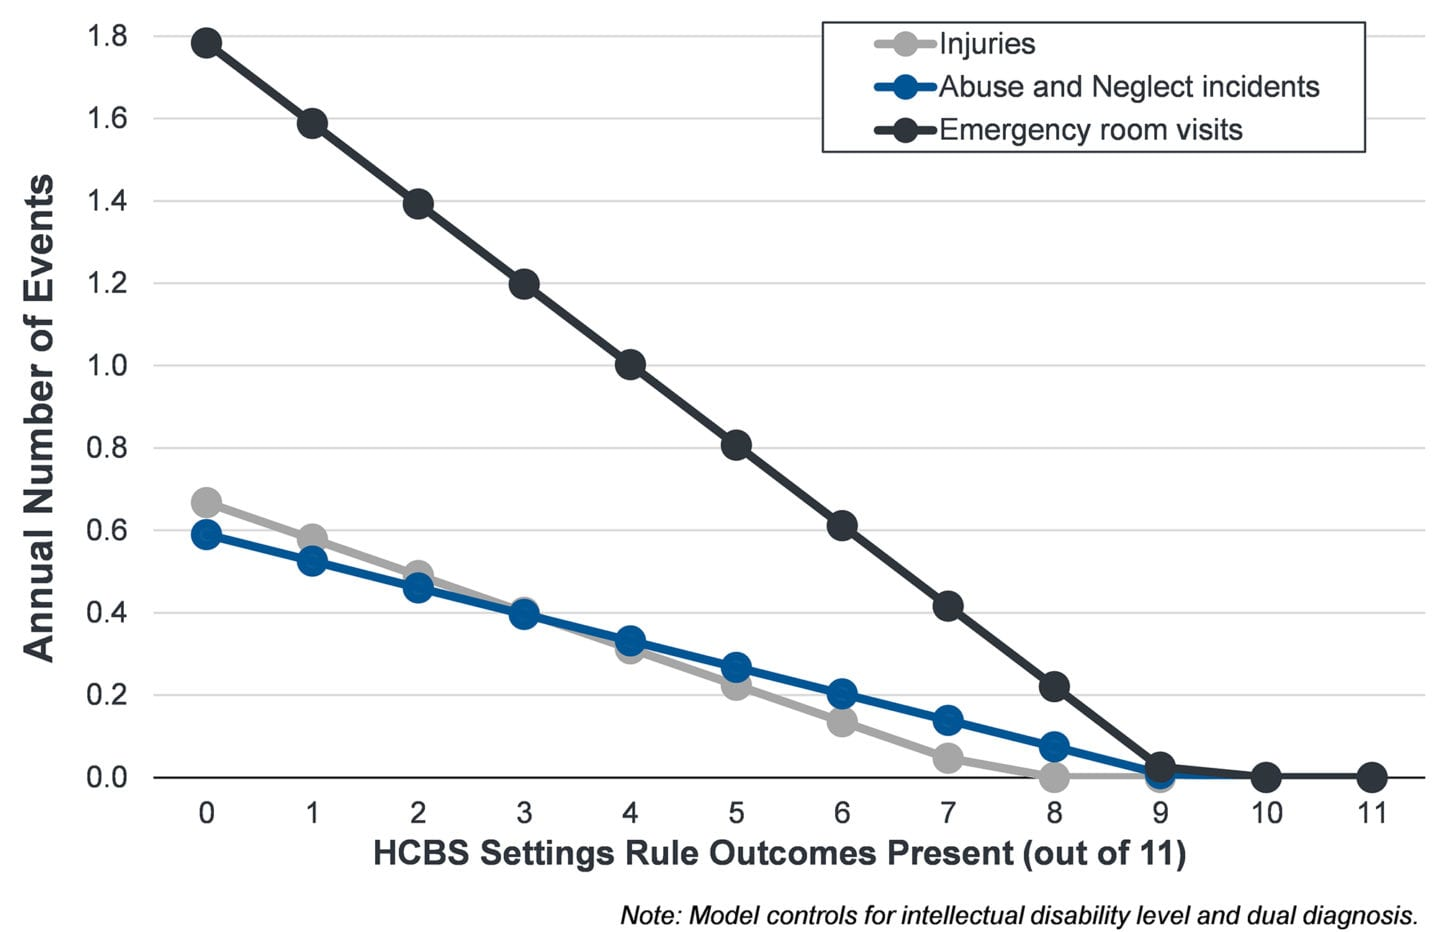 This figure shows that the more HCBS Settings Rule Outcomes a person has present, the fewer injuries, incidents of abuse and neglect, and emergency room visits they have.